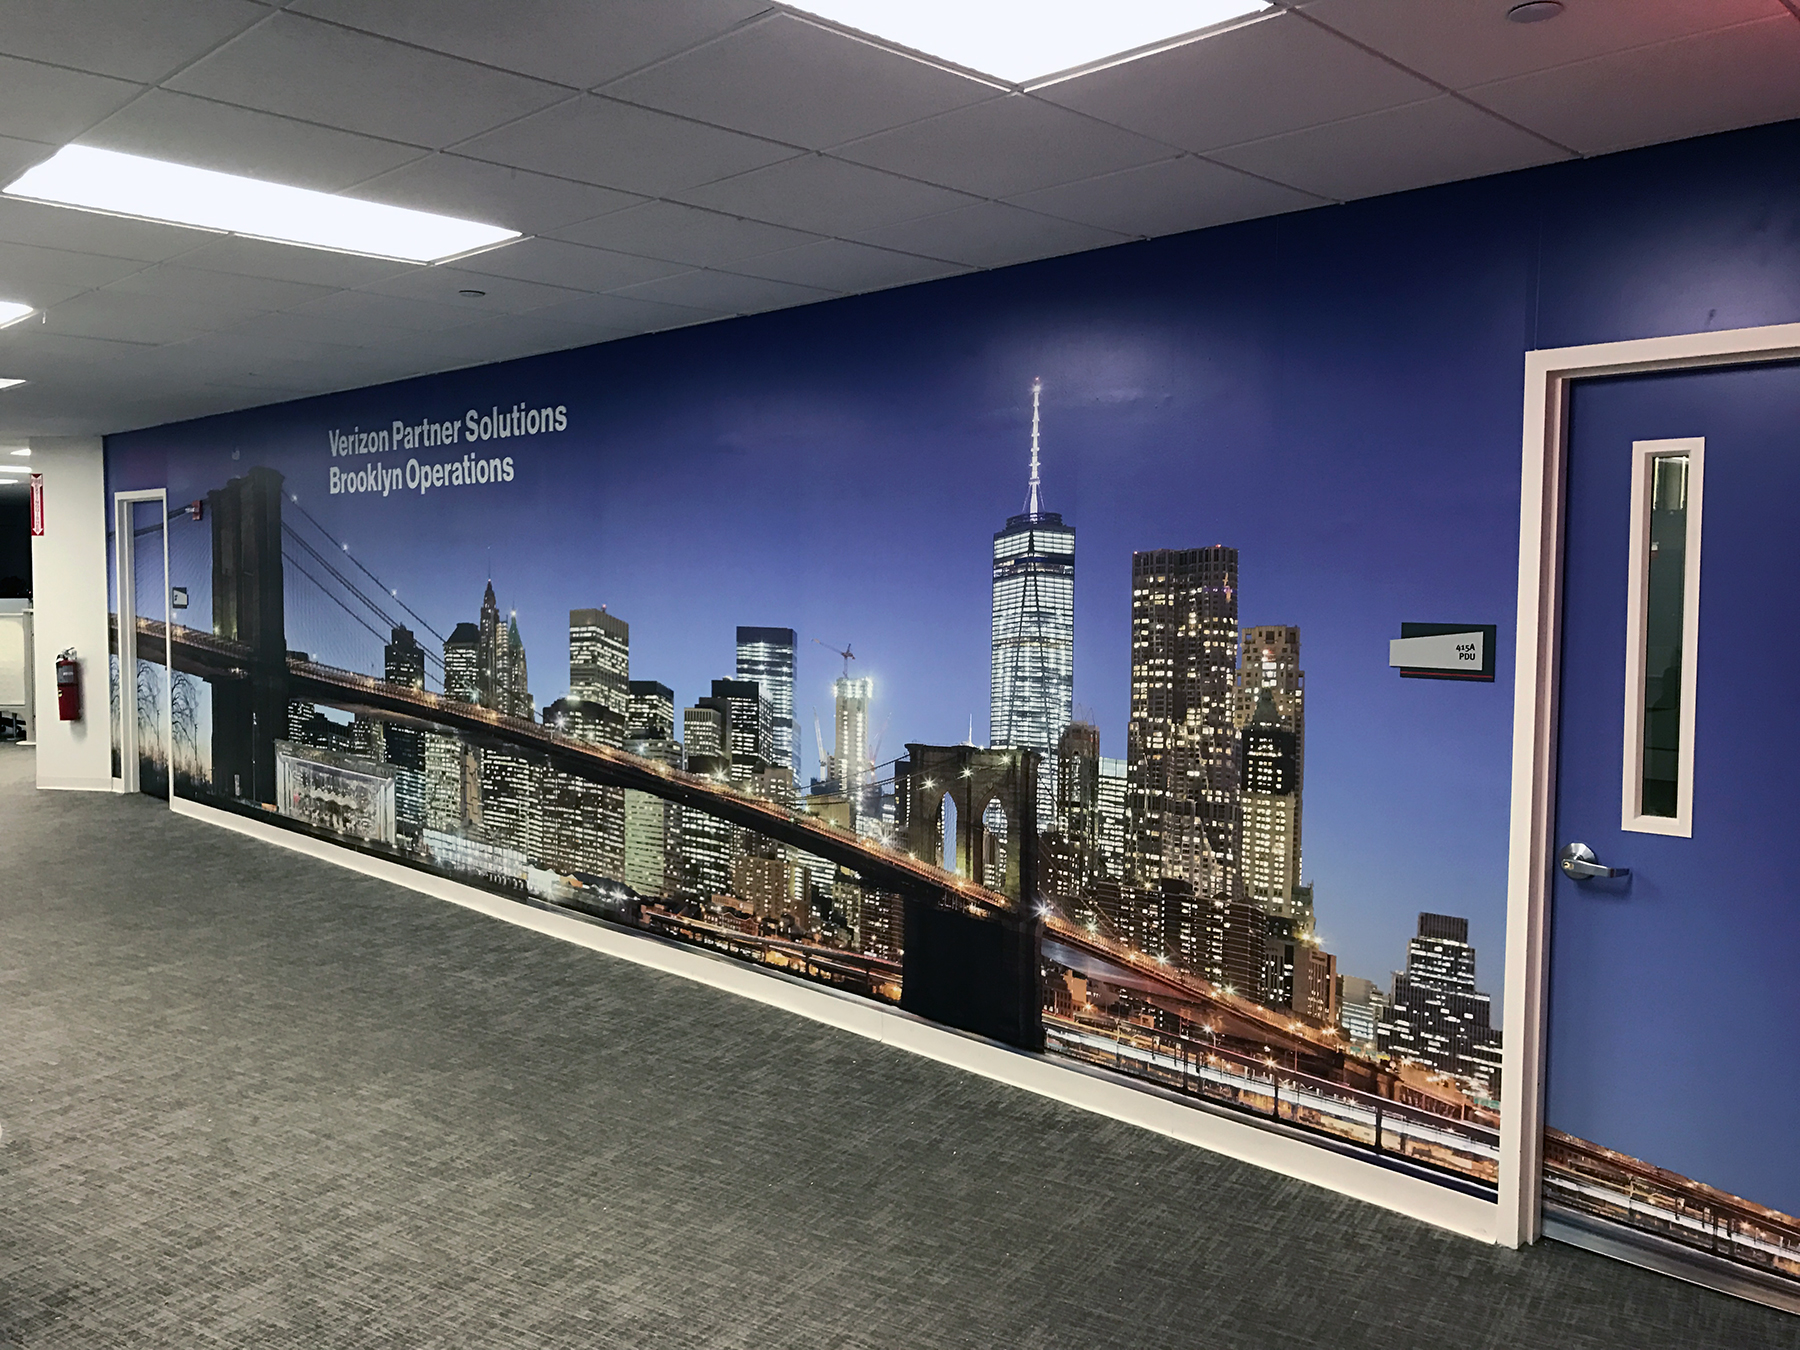 Brooklyn Bridge Wall Mural Large Format Printing Medford Boston